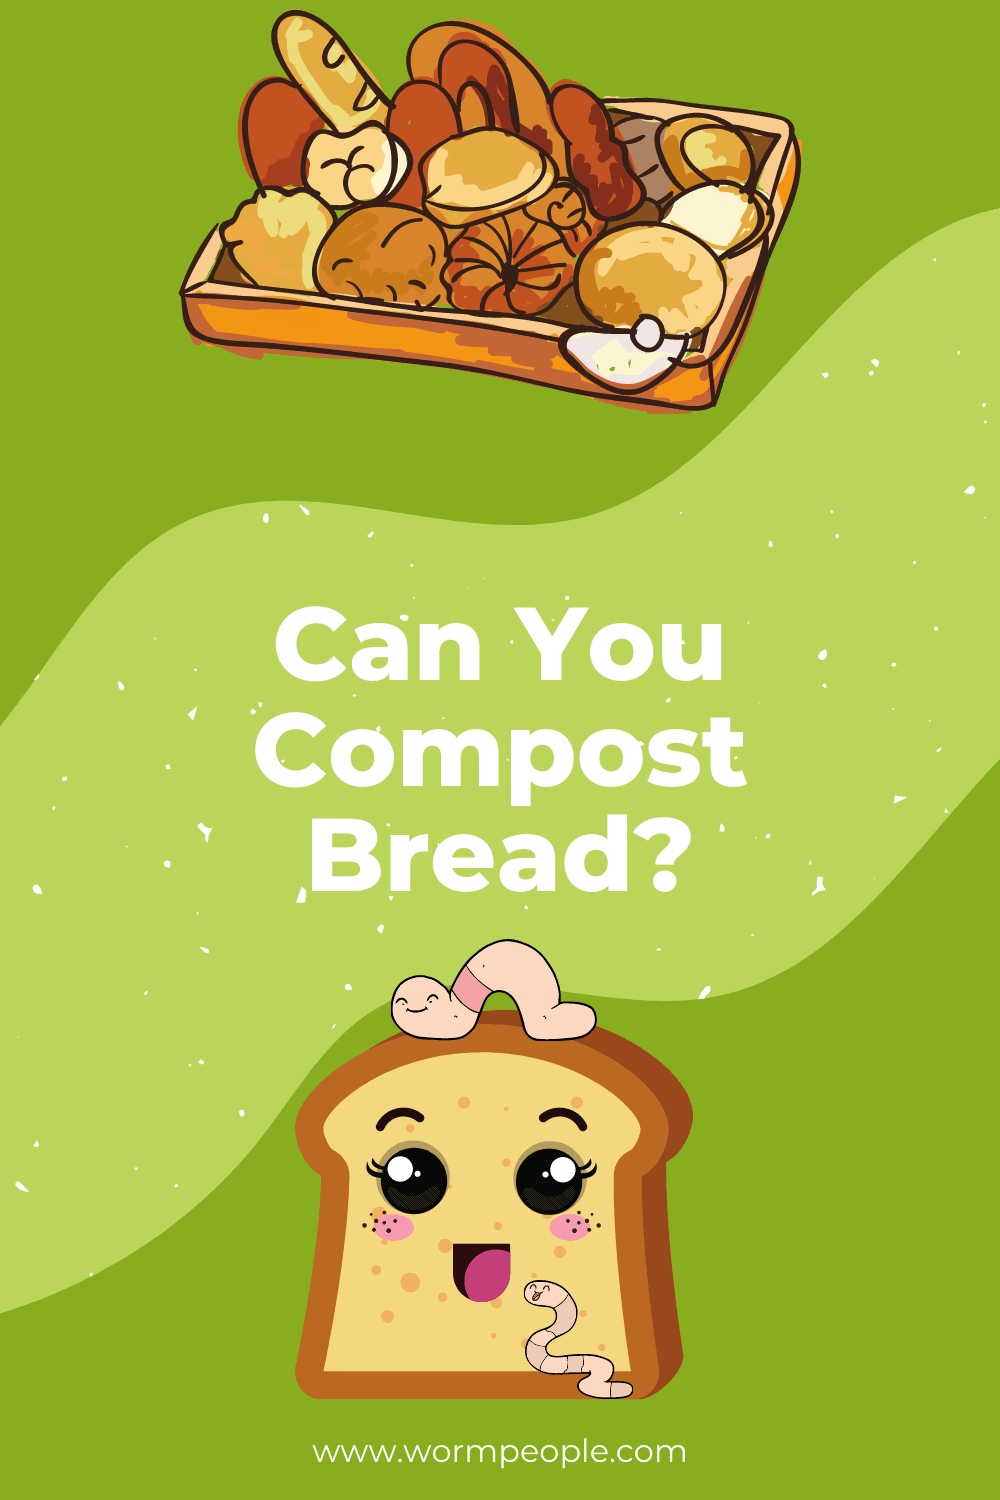 Can You Compost Bread?